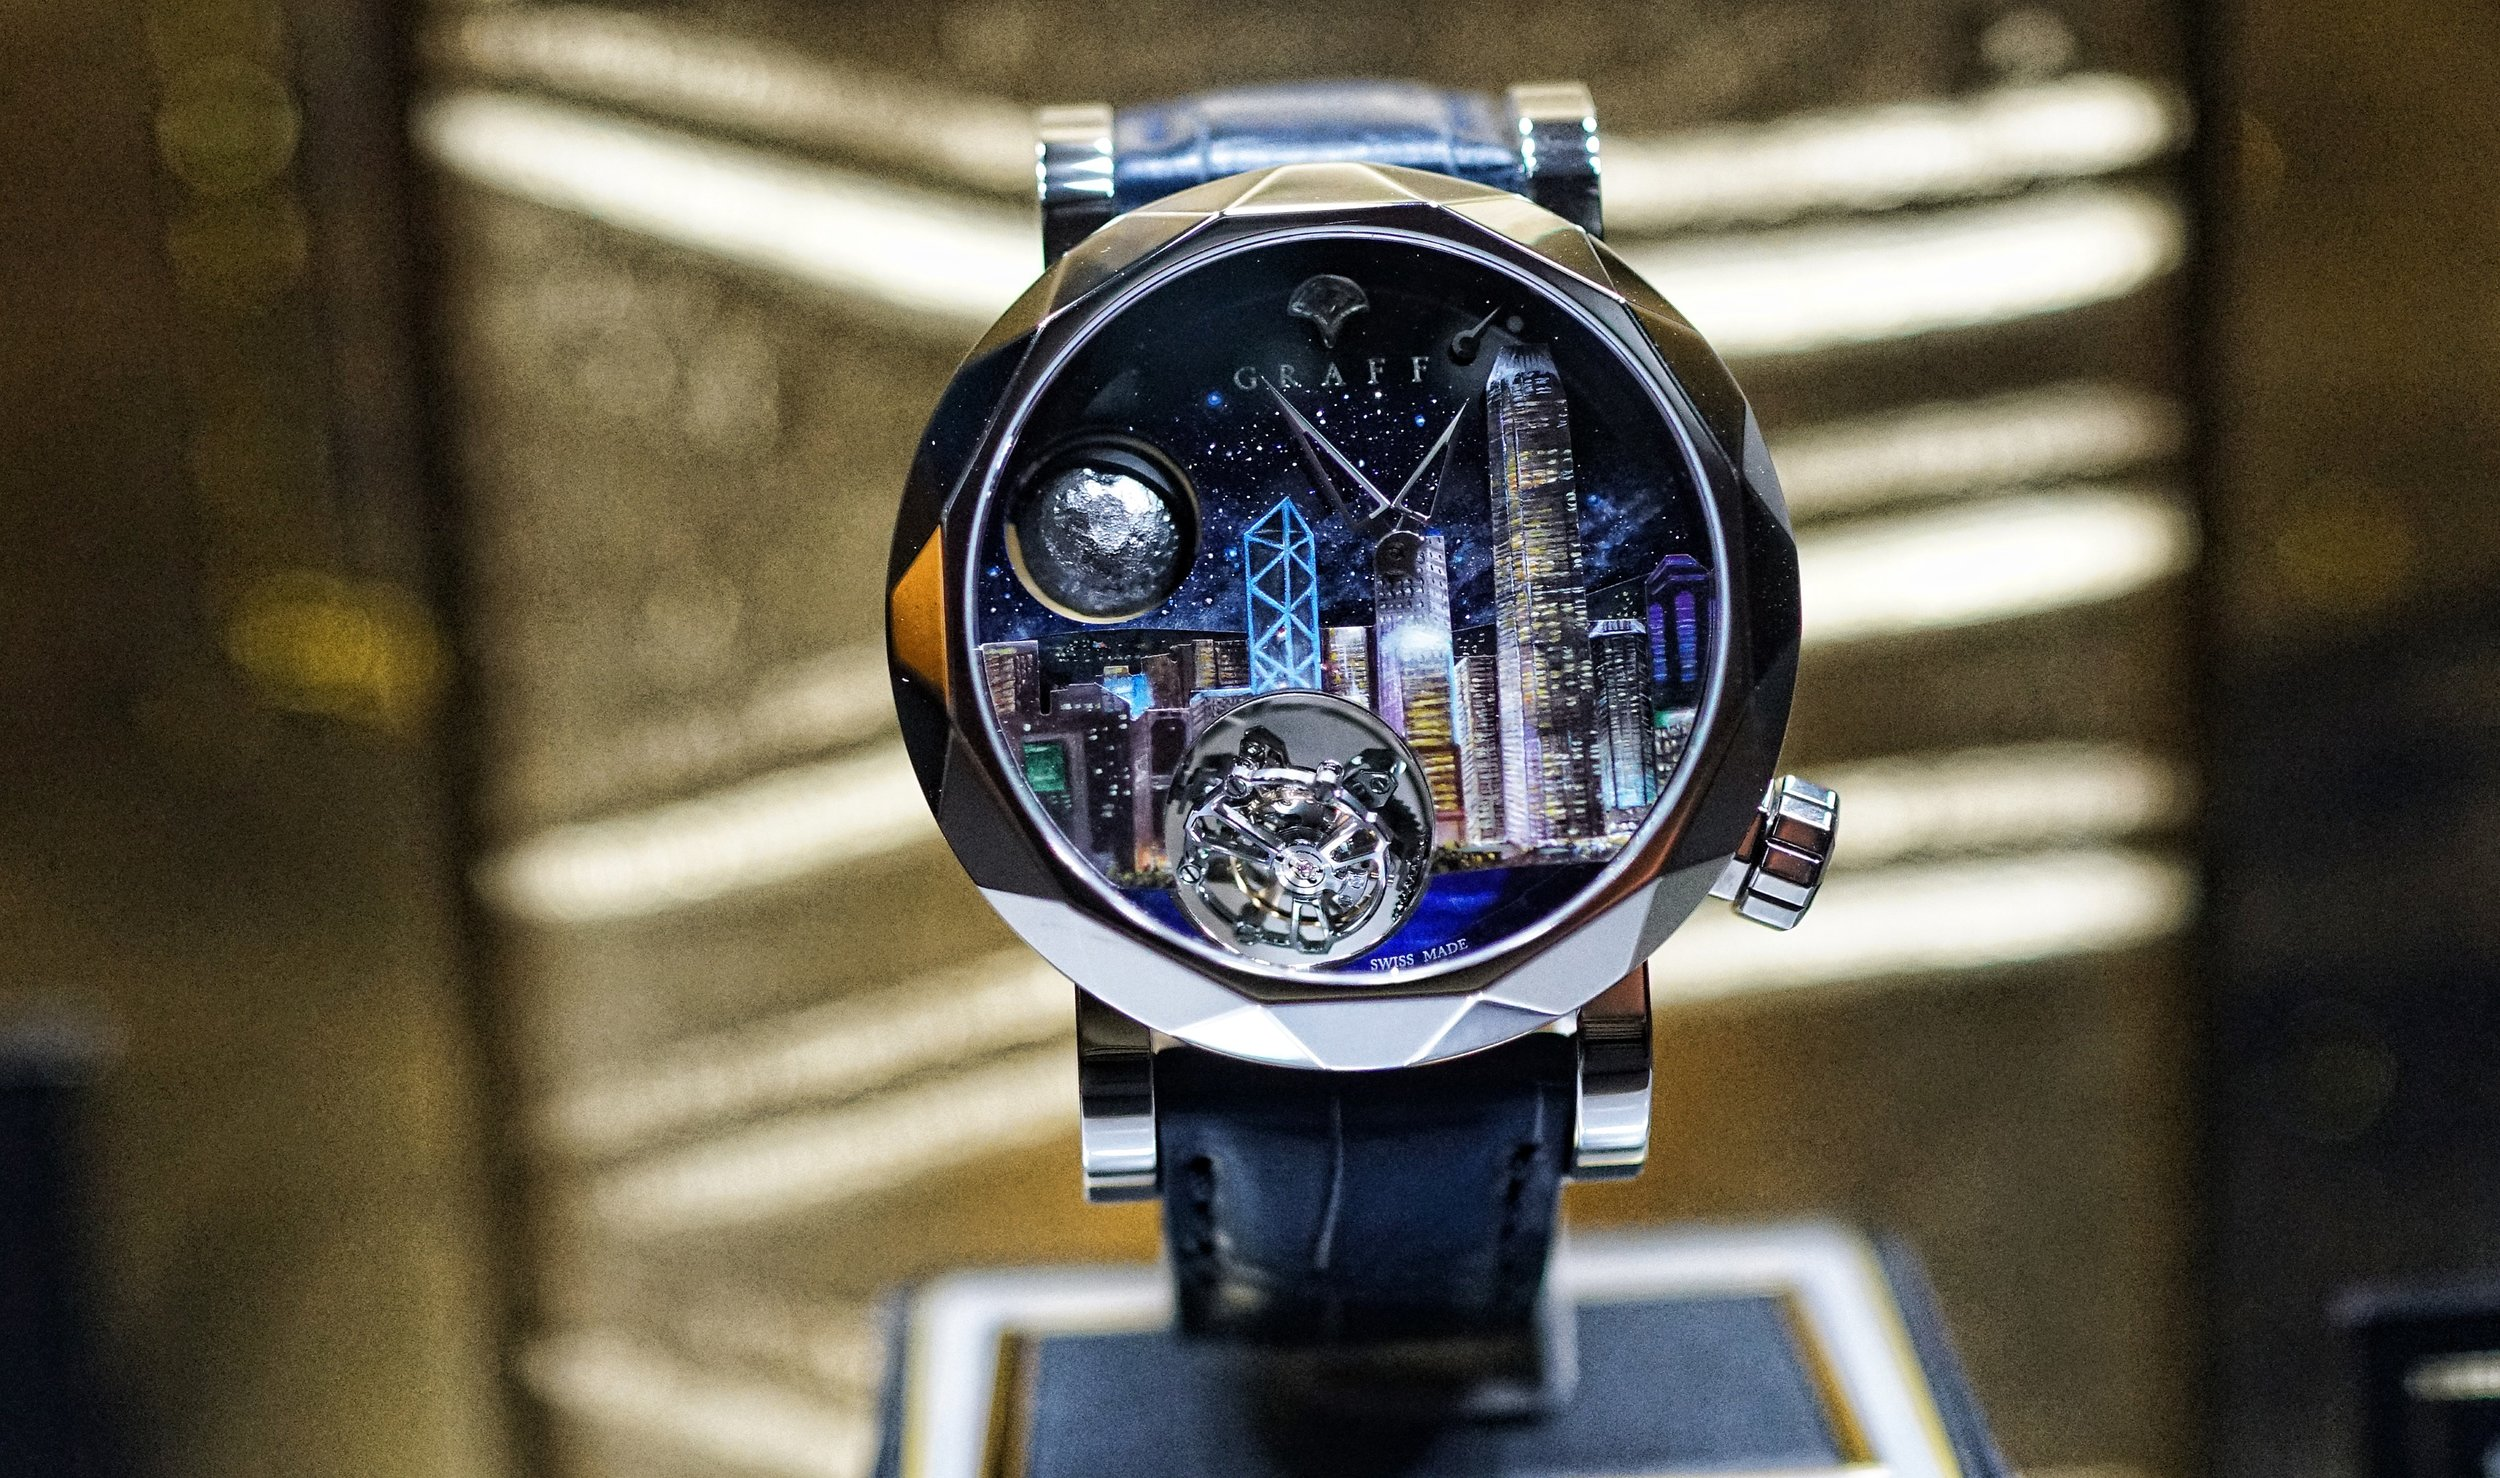 What a magnificent watch depicting Hong Kong by Graff Jewellers, a very famous Jewish Owned Company with 3 stores in Hong Kong -